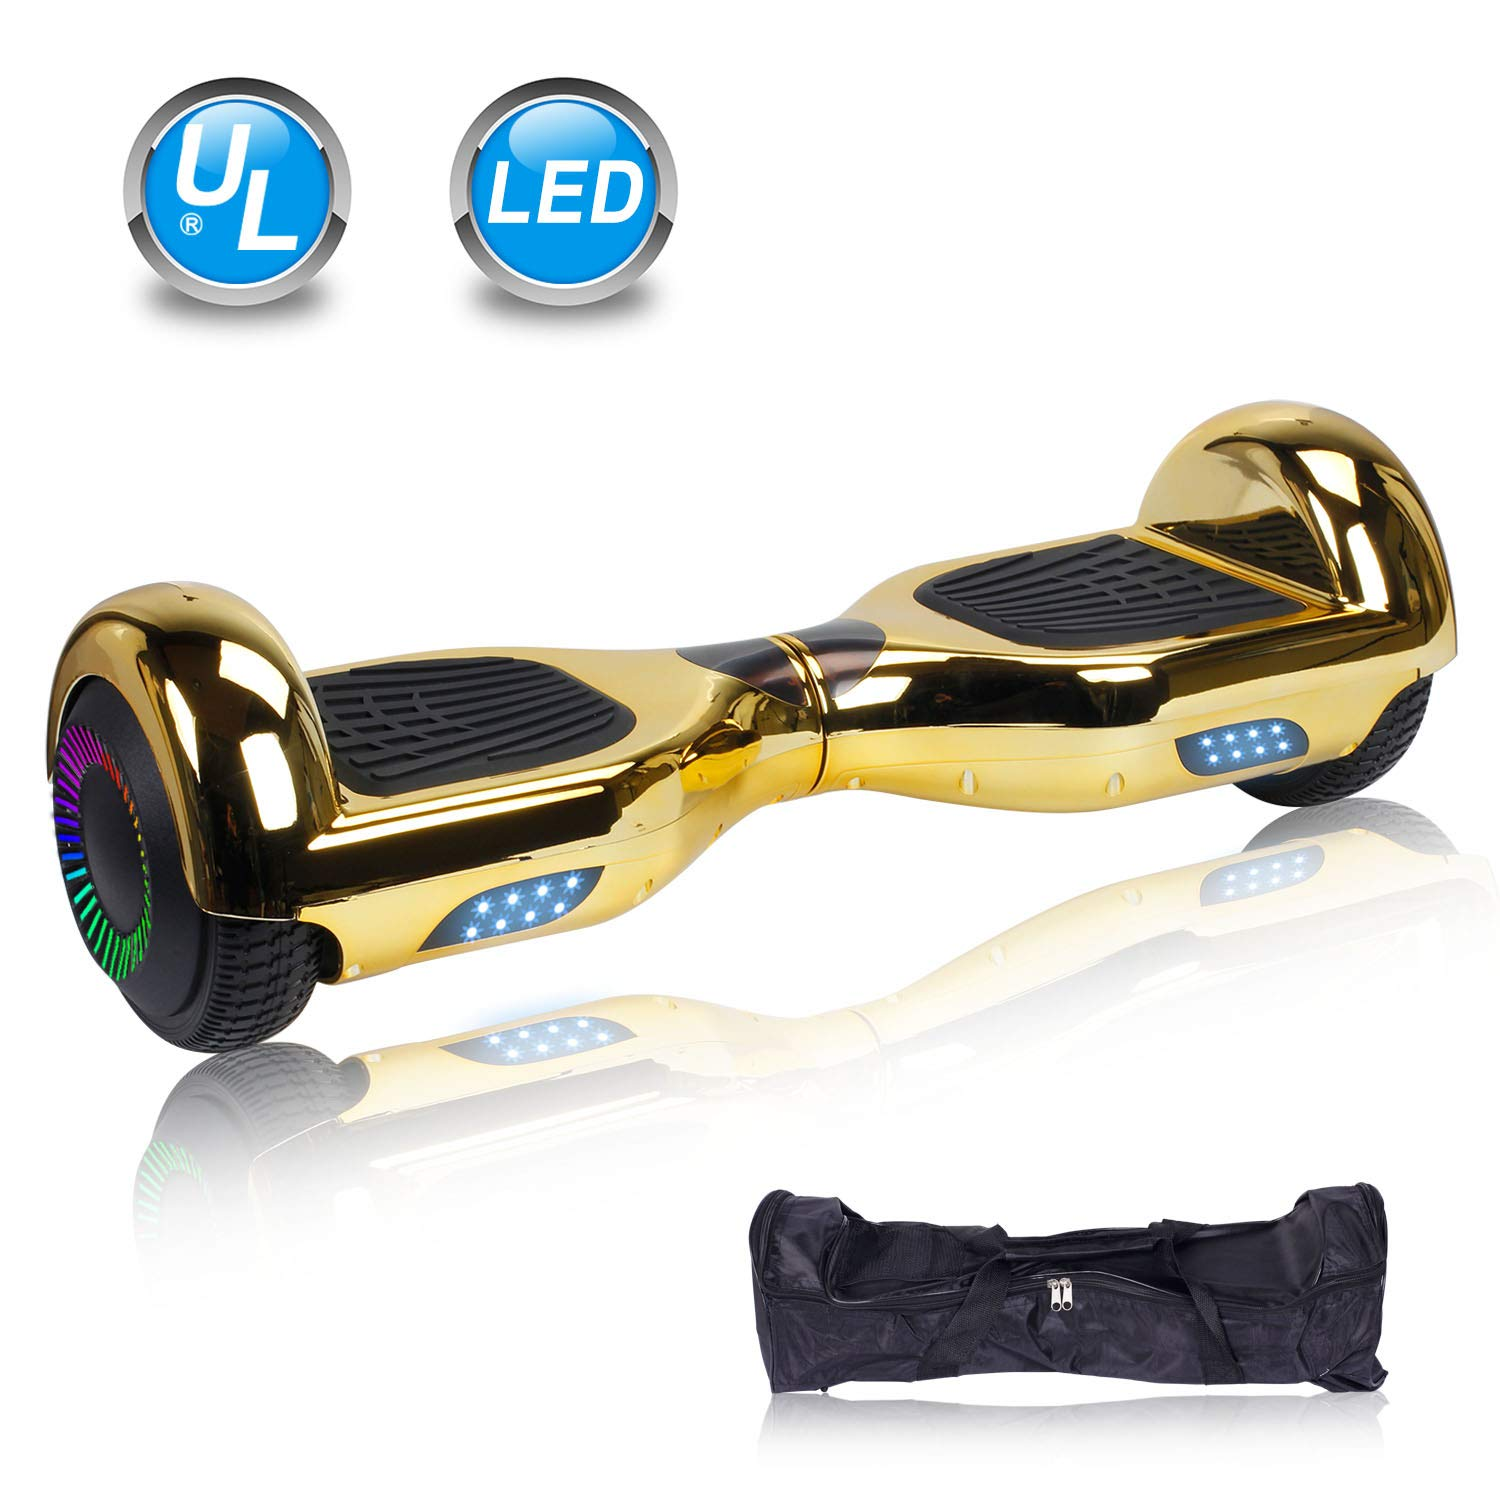 UNI-SUN 6.5'' Hoverboard for Kids, Two Wheel Self Balancing Electric Scooter, Hoverboard with LED Lights for Adults, UL 2272 Certified Hover Board(Classic Chrome Gold)